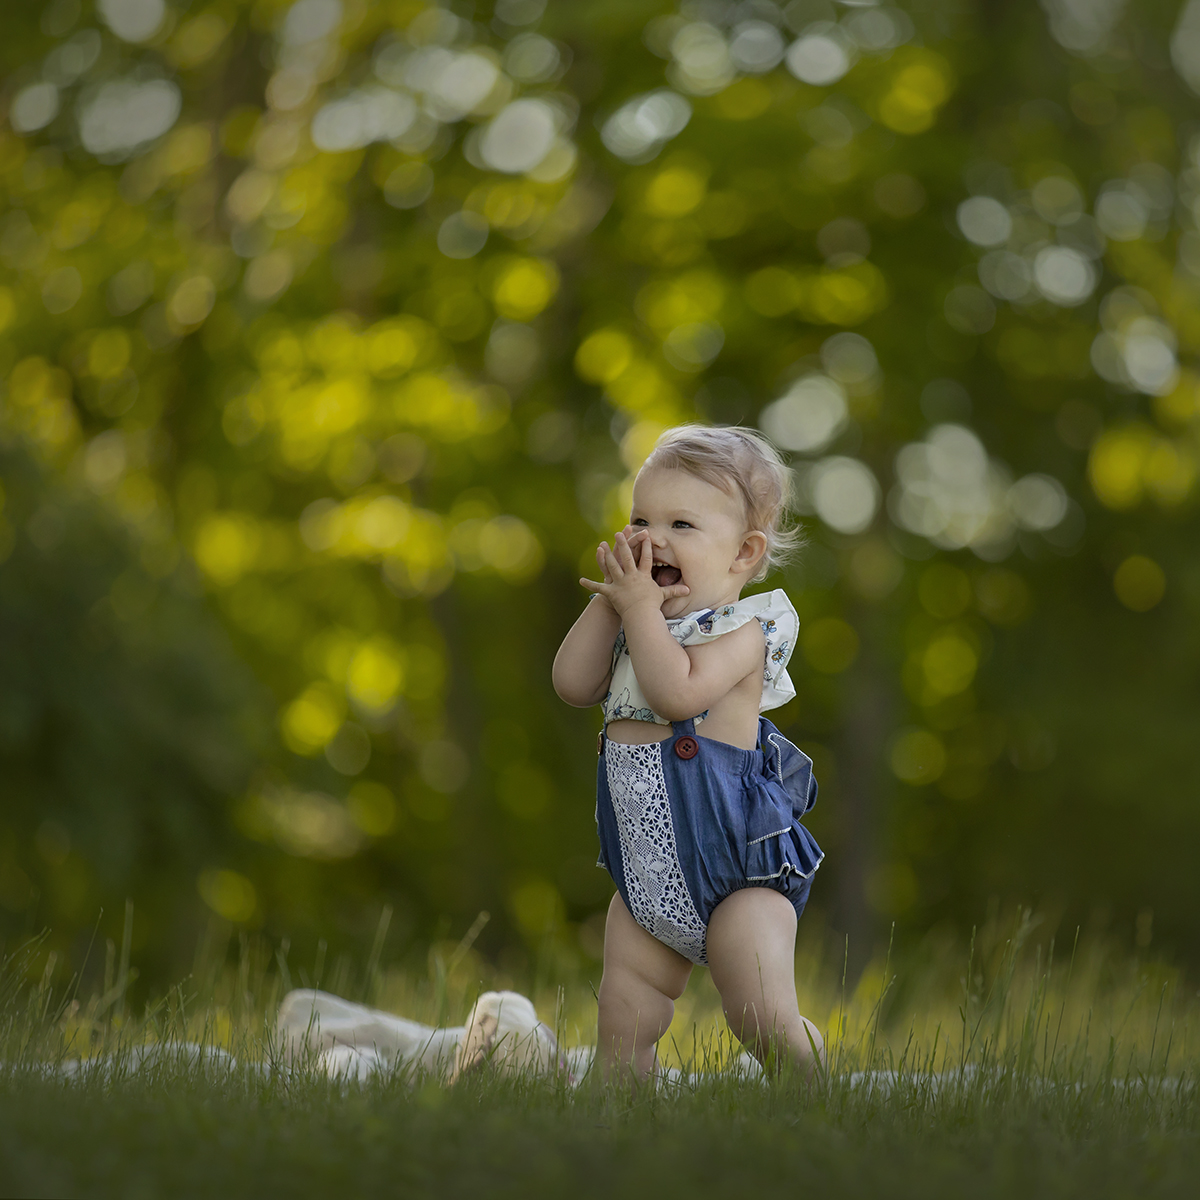 Toddler in blue romper in grassy field